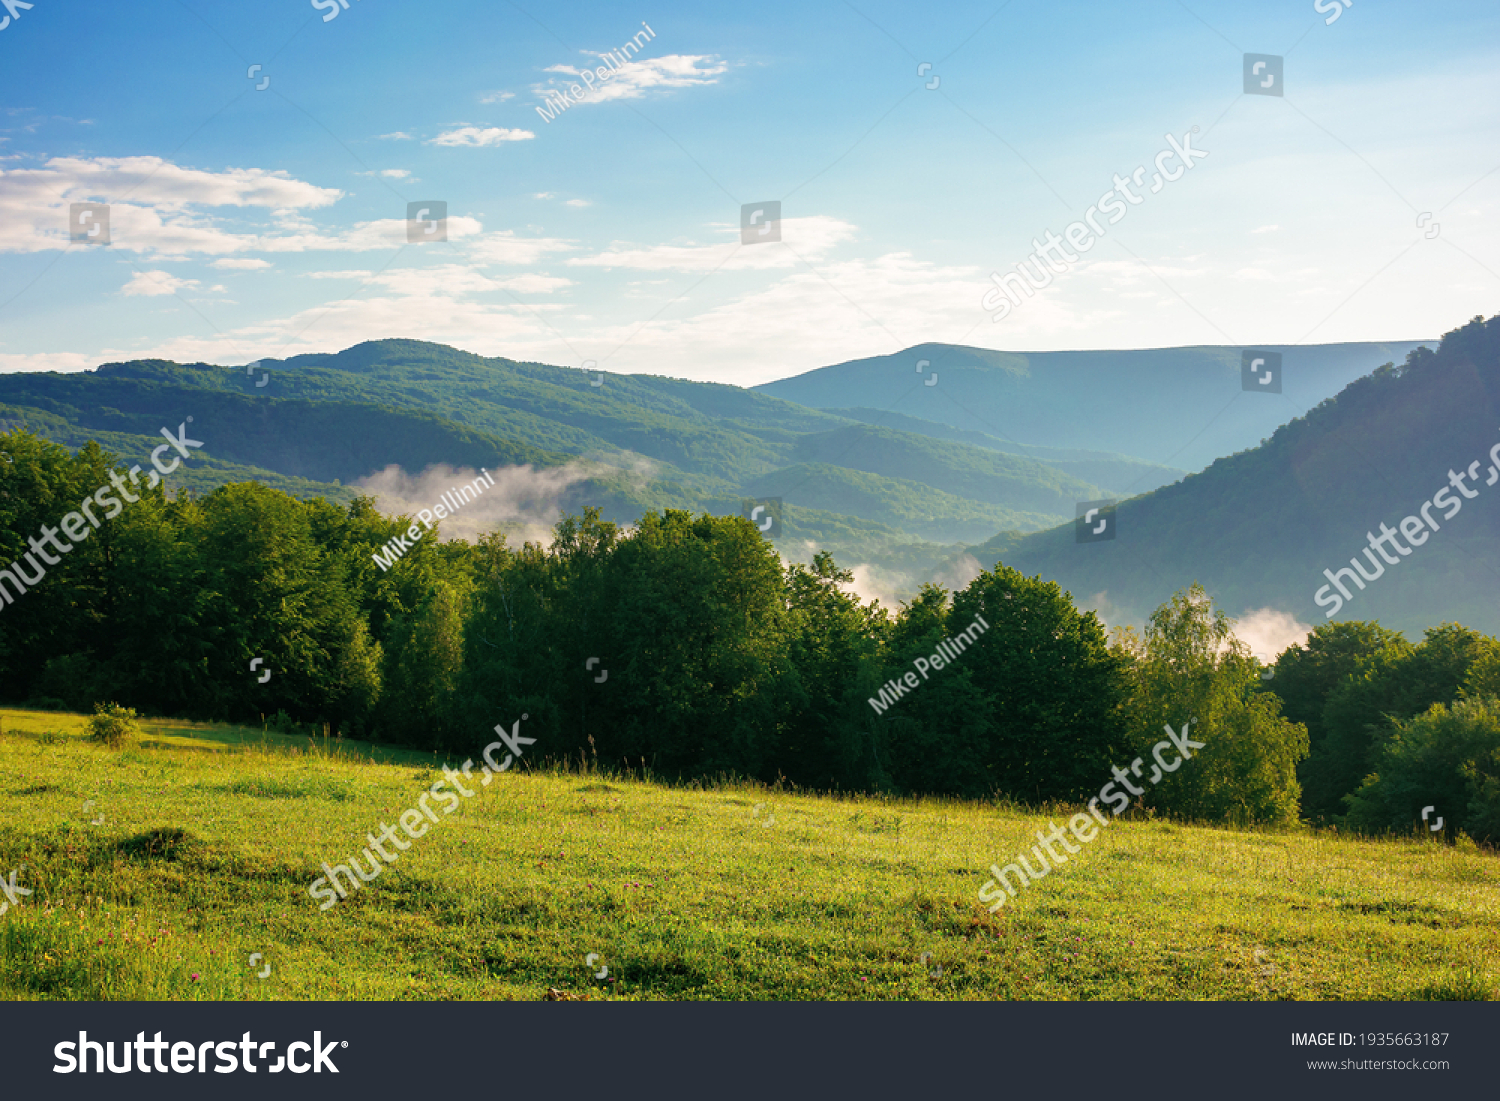 mountain meadow in morning light. countryside springtime landscape with valley in fog behind the forest on the grassy hill. fluffy clouds on a bright blue sky. nature freshness concept #1935663187